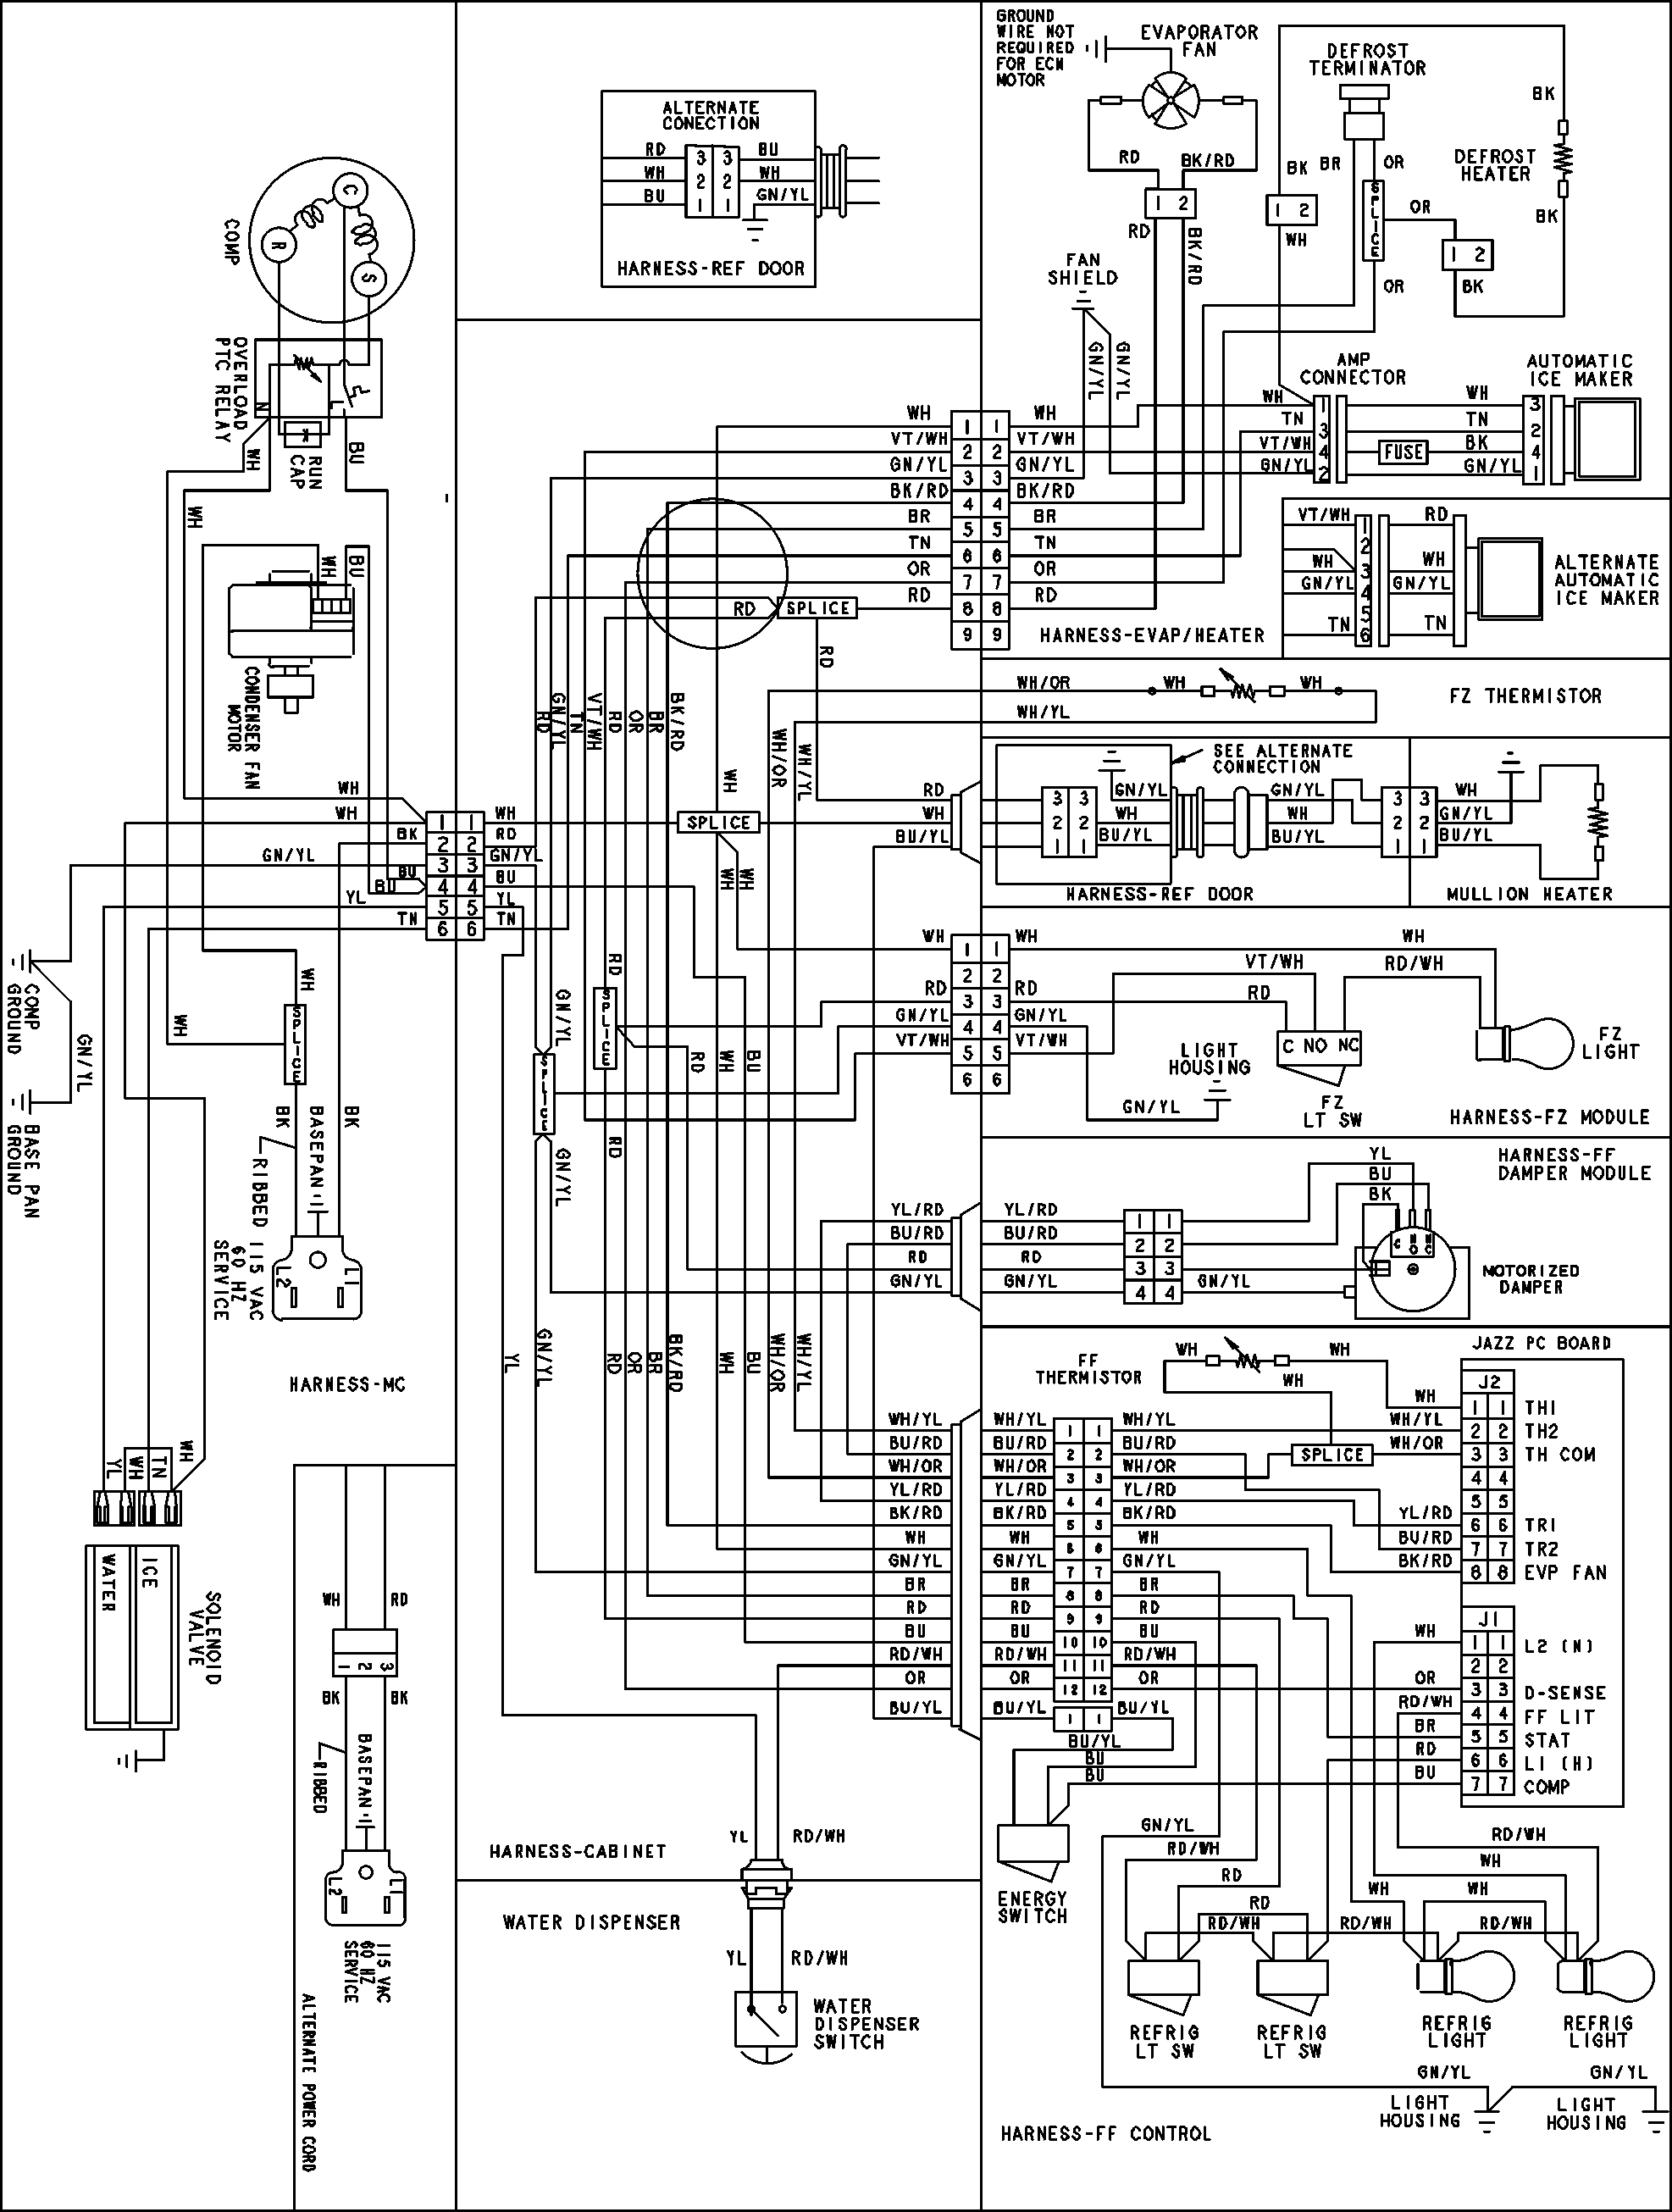 amana ptac wiring diagram | free wiring diagram amana clothes dryer wiring diagrams